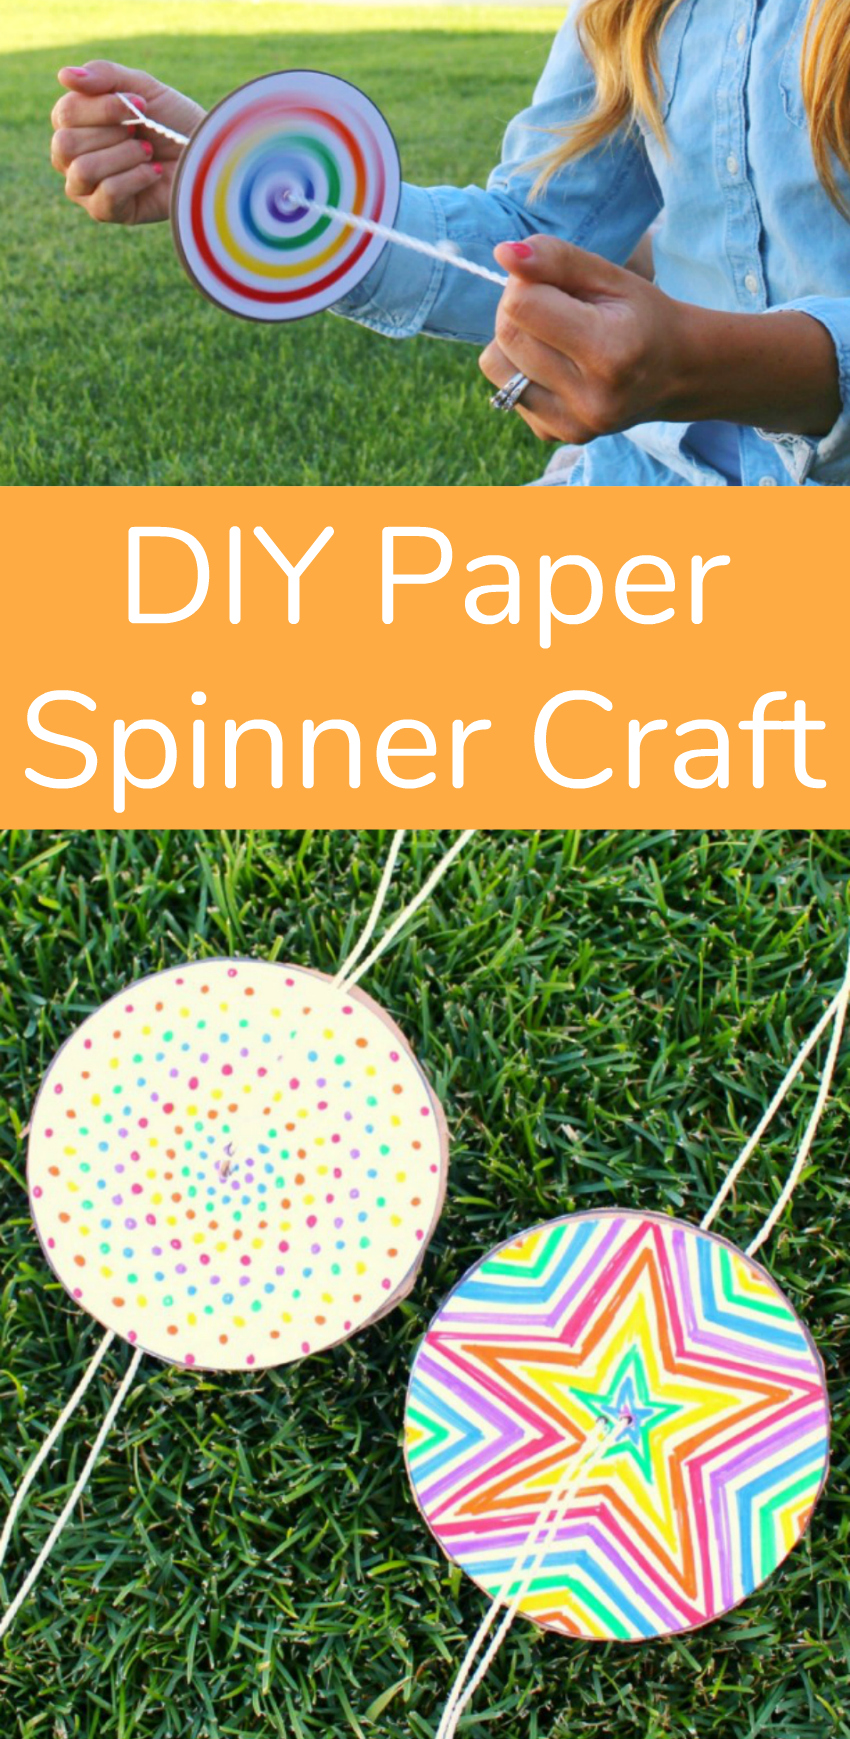 DIY Paper Spinner Craft for Kids